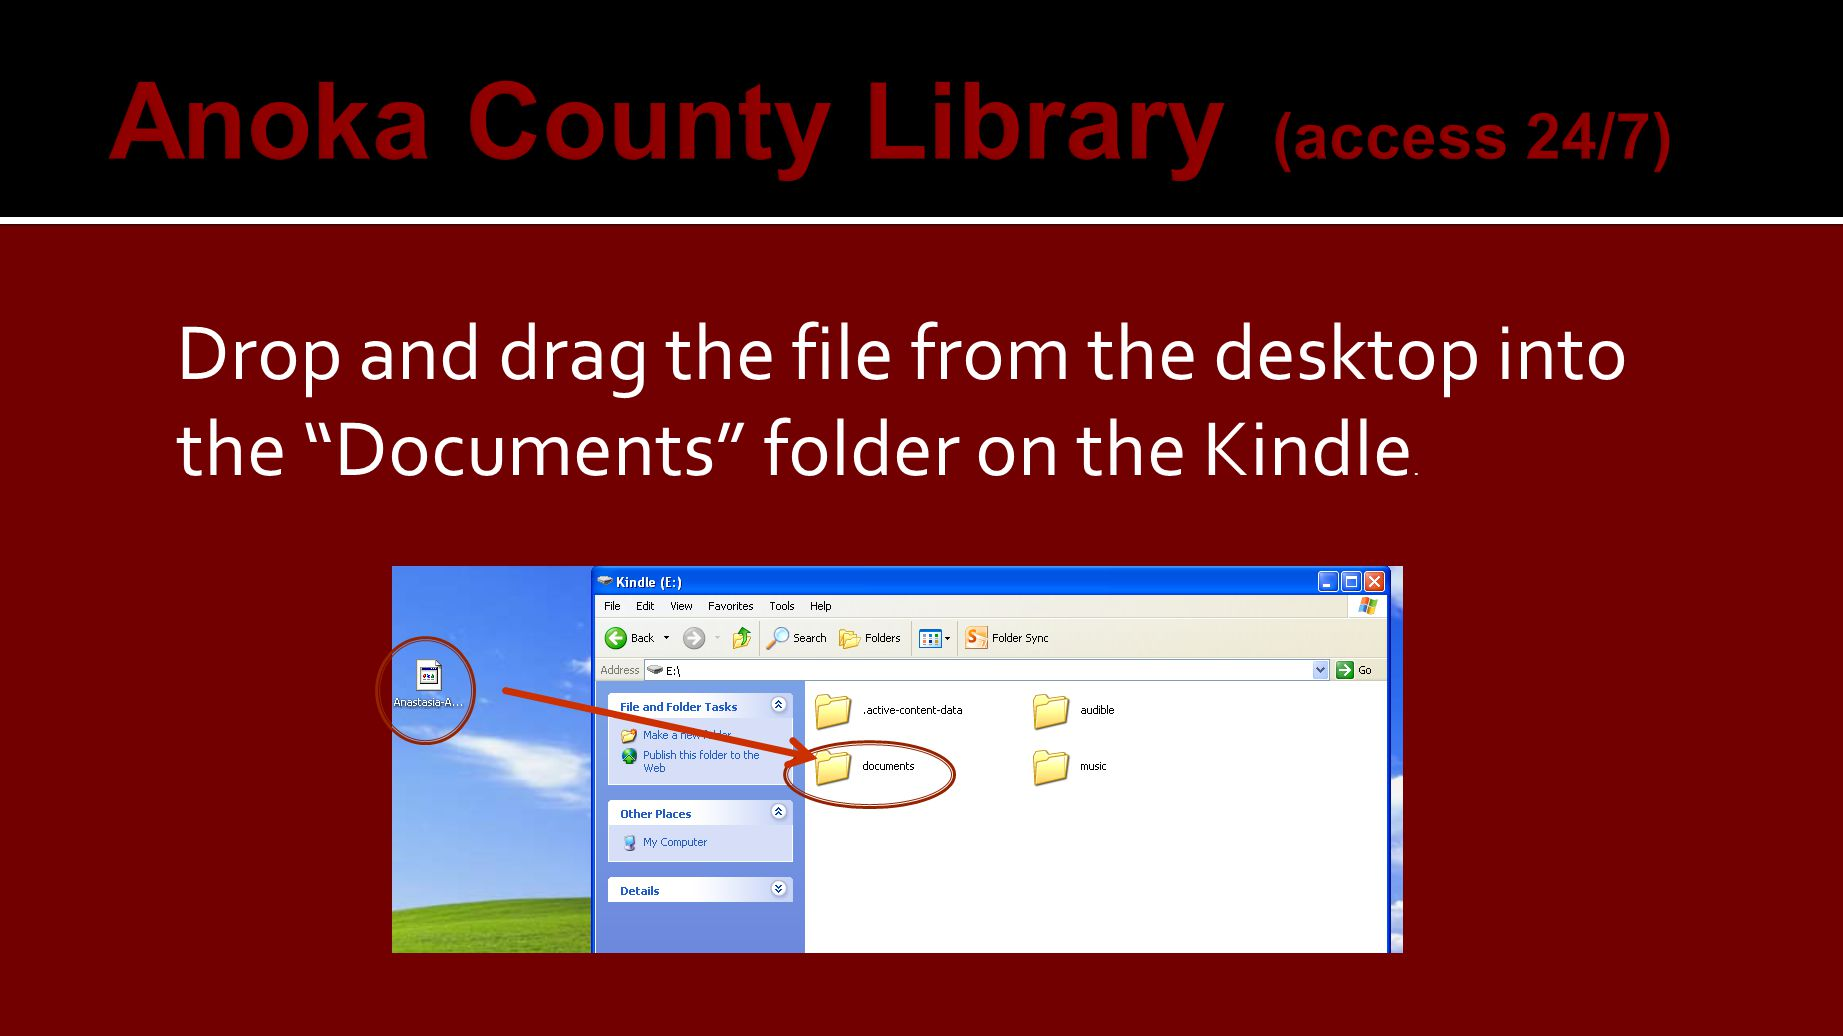 Drop and drag the file from the desktop into the Documents folder on the Kindle.